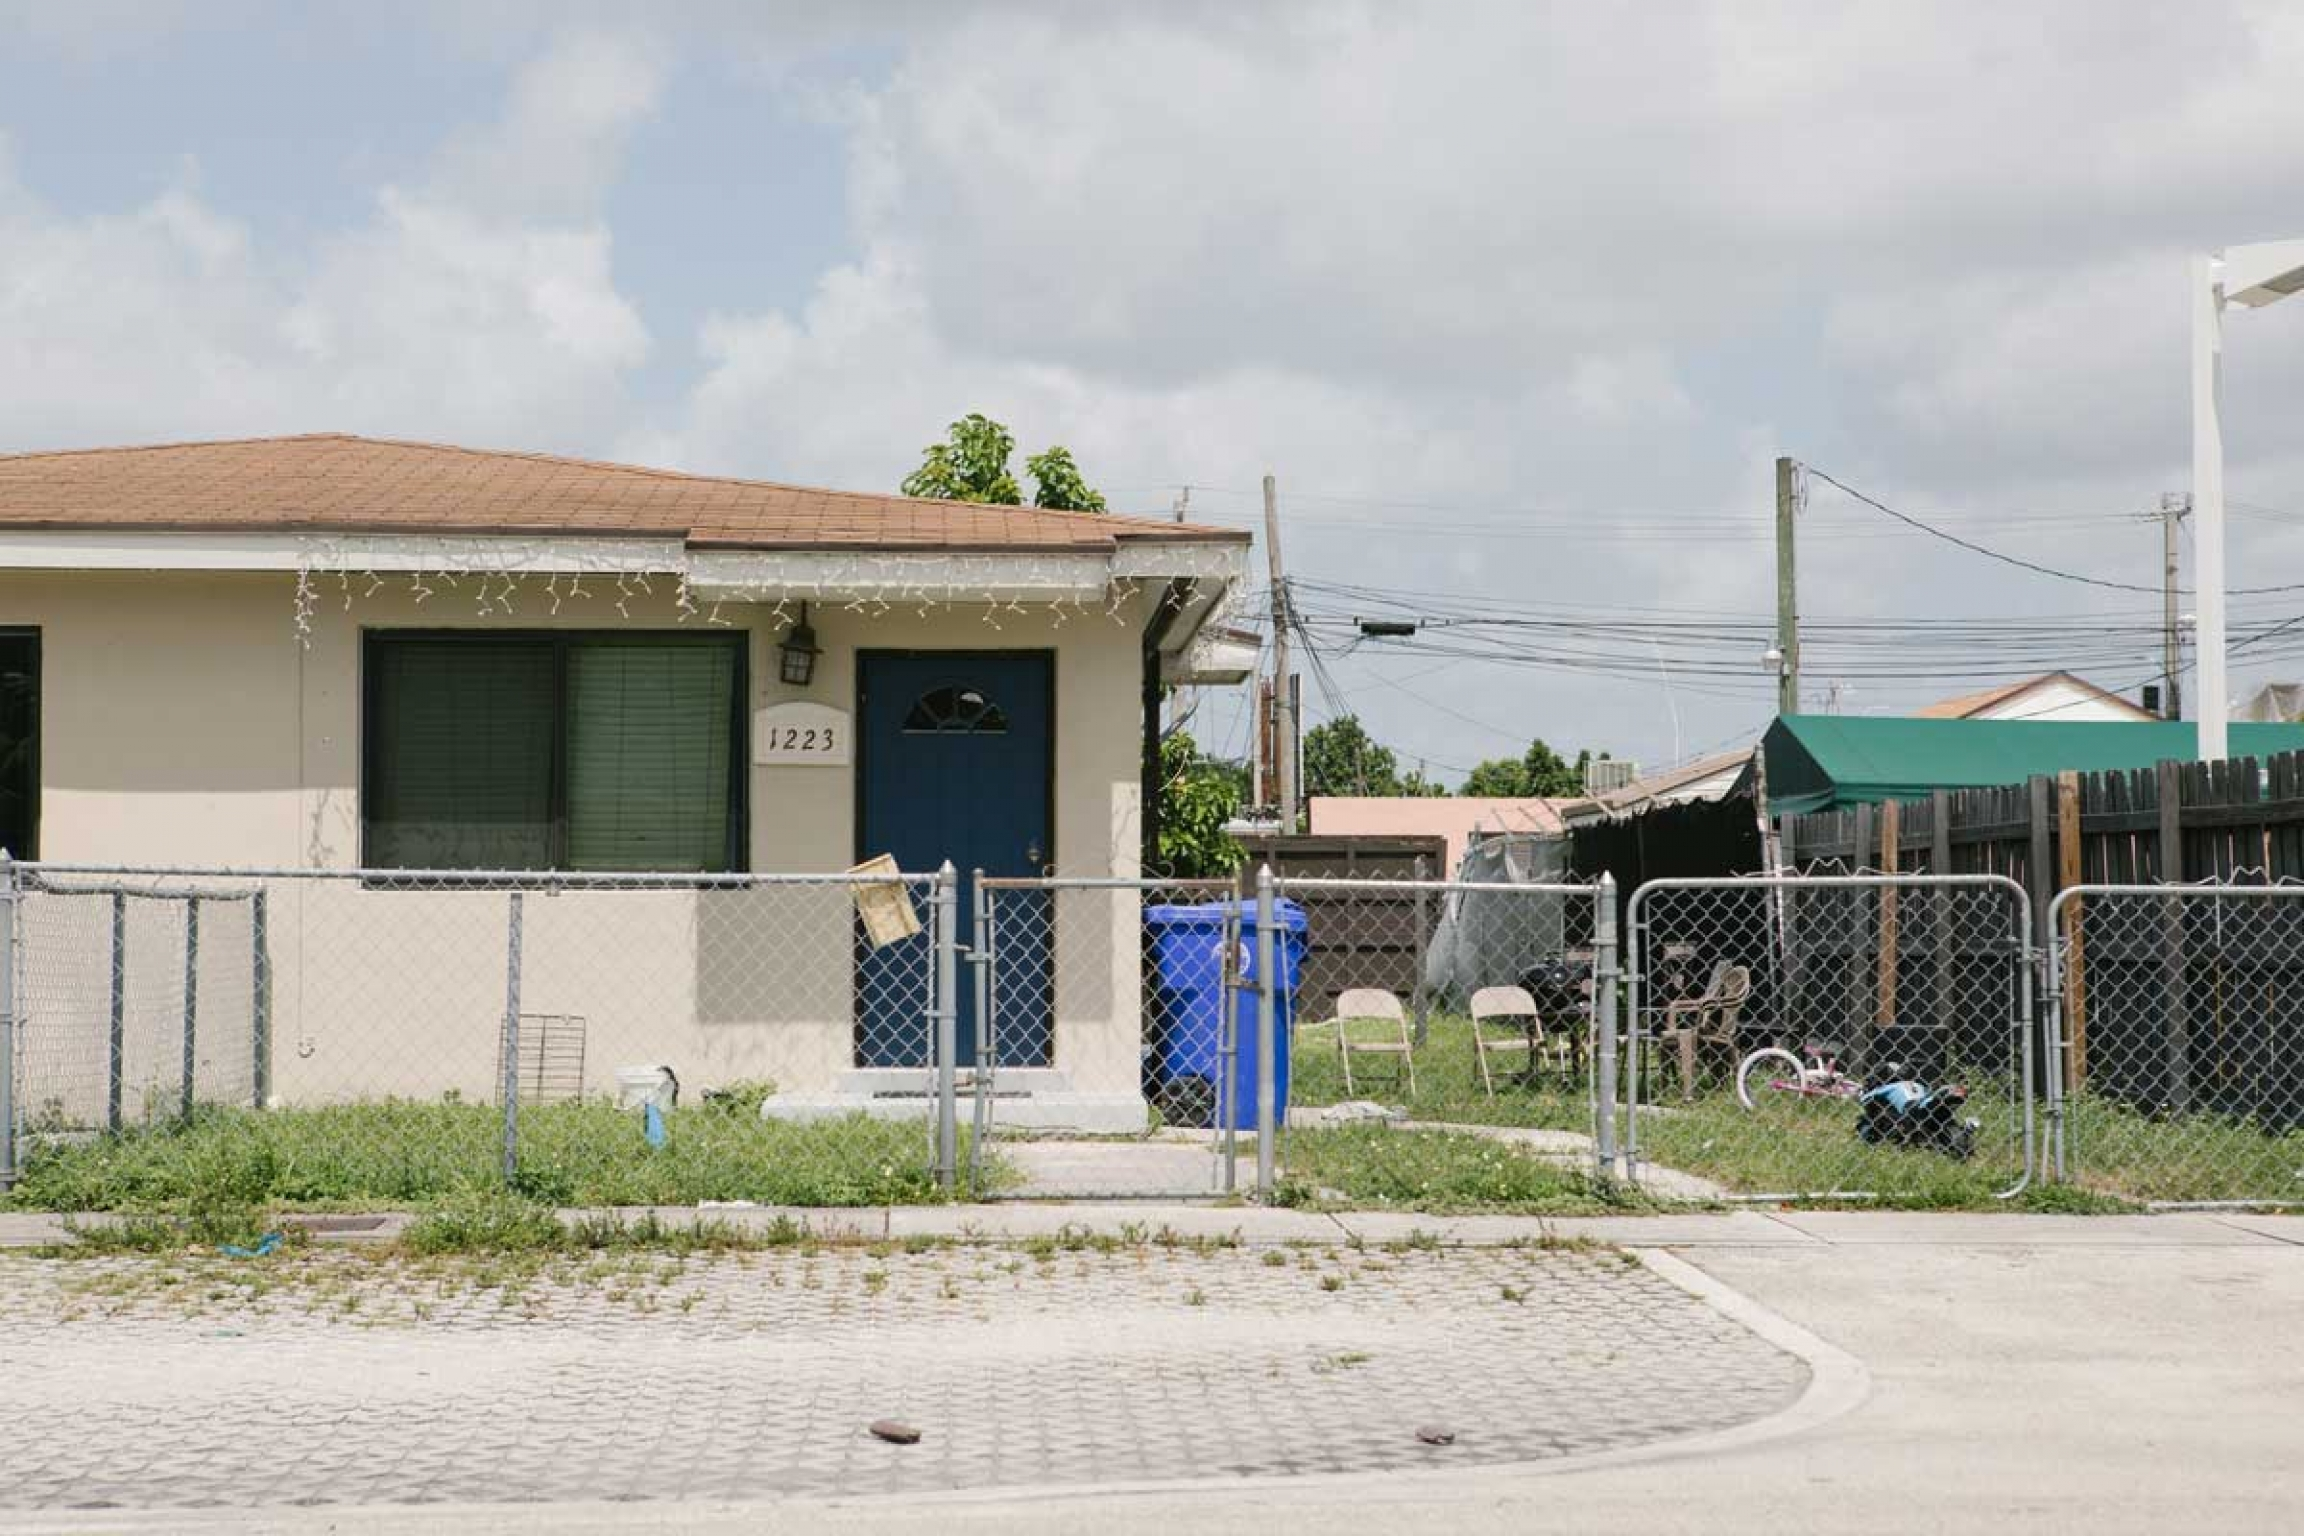 Nataly Alcantara and her family were robbed while living at this Miami home in November 2014.